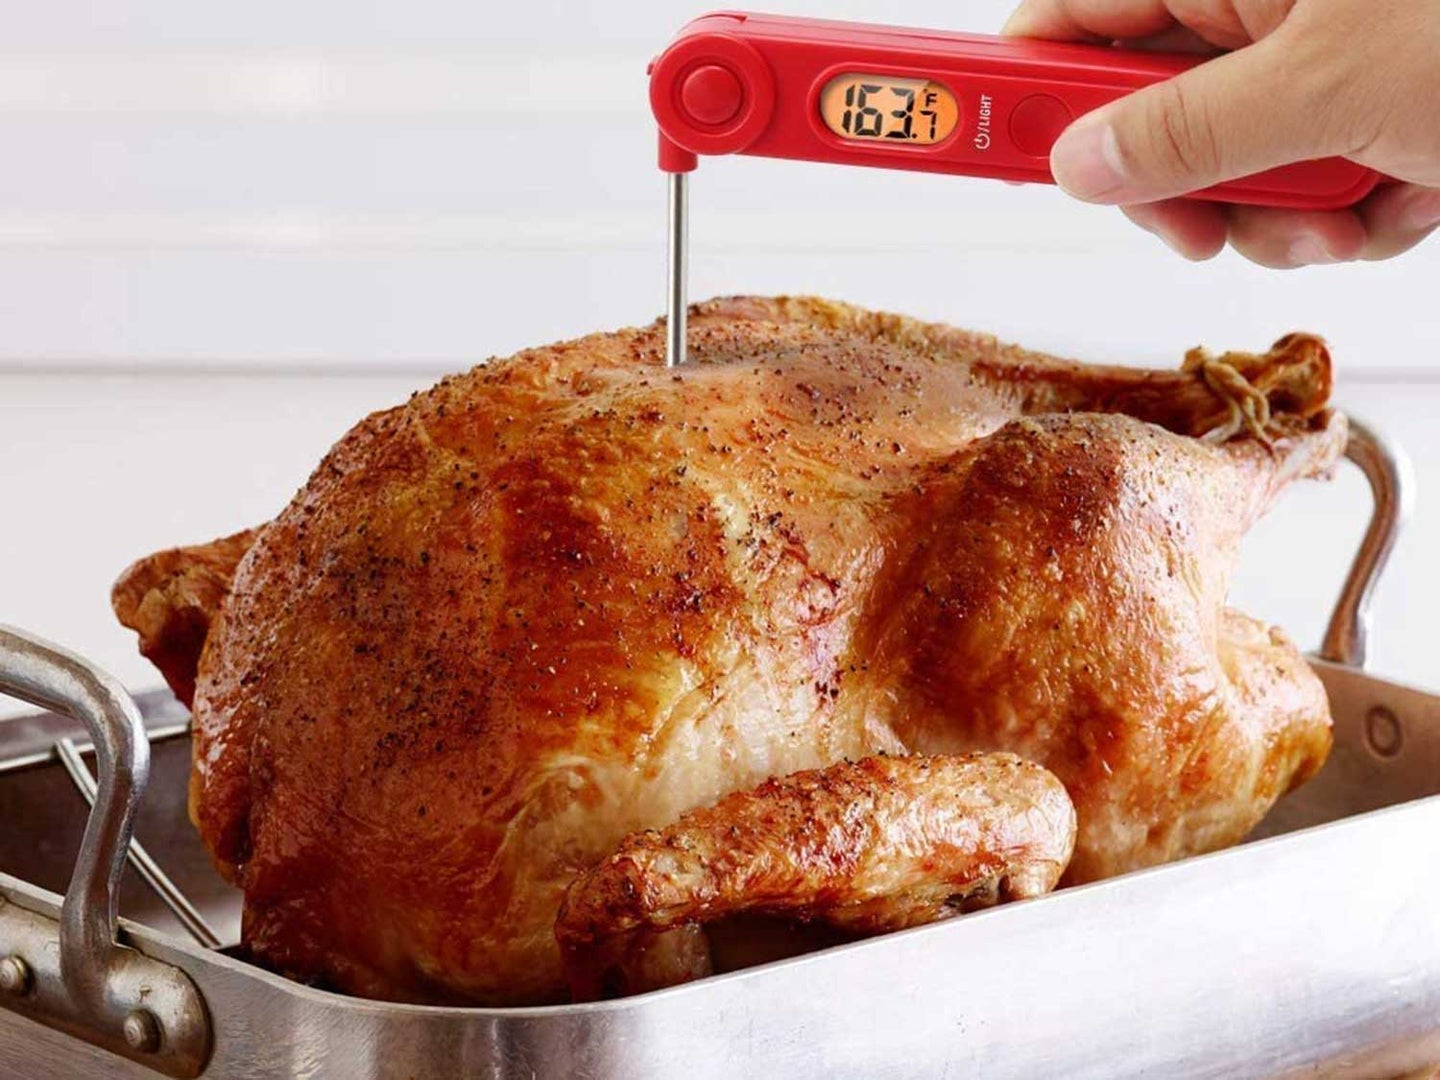 Checking turkeys temperature with meat thermometer.